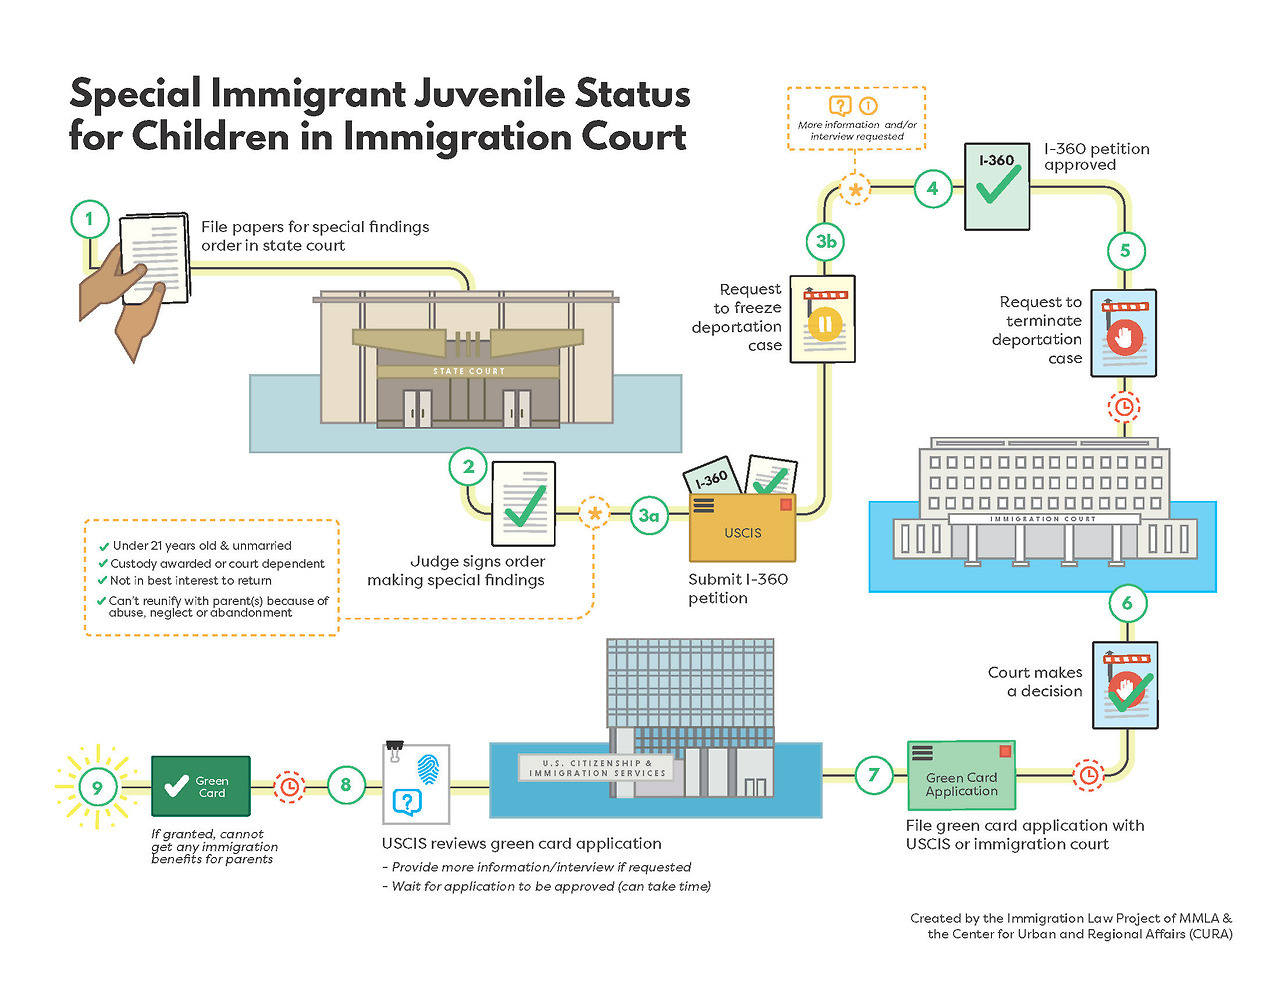 Special Immigrant Juvenile Status for Children in Immigration Court